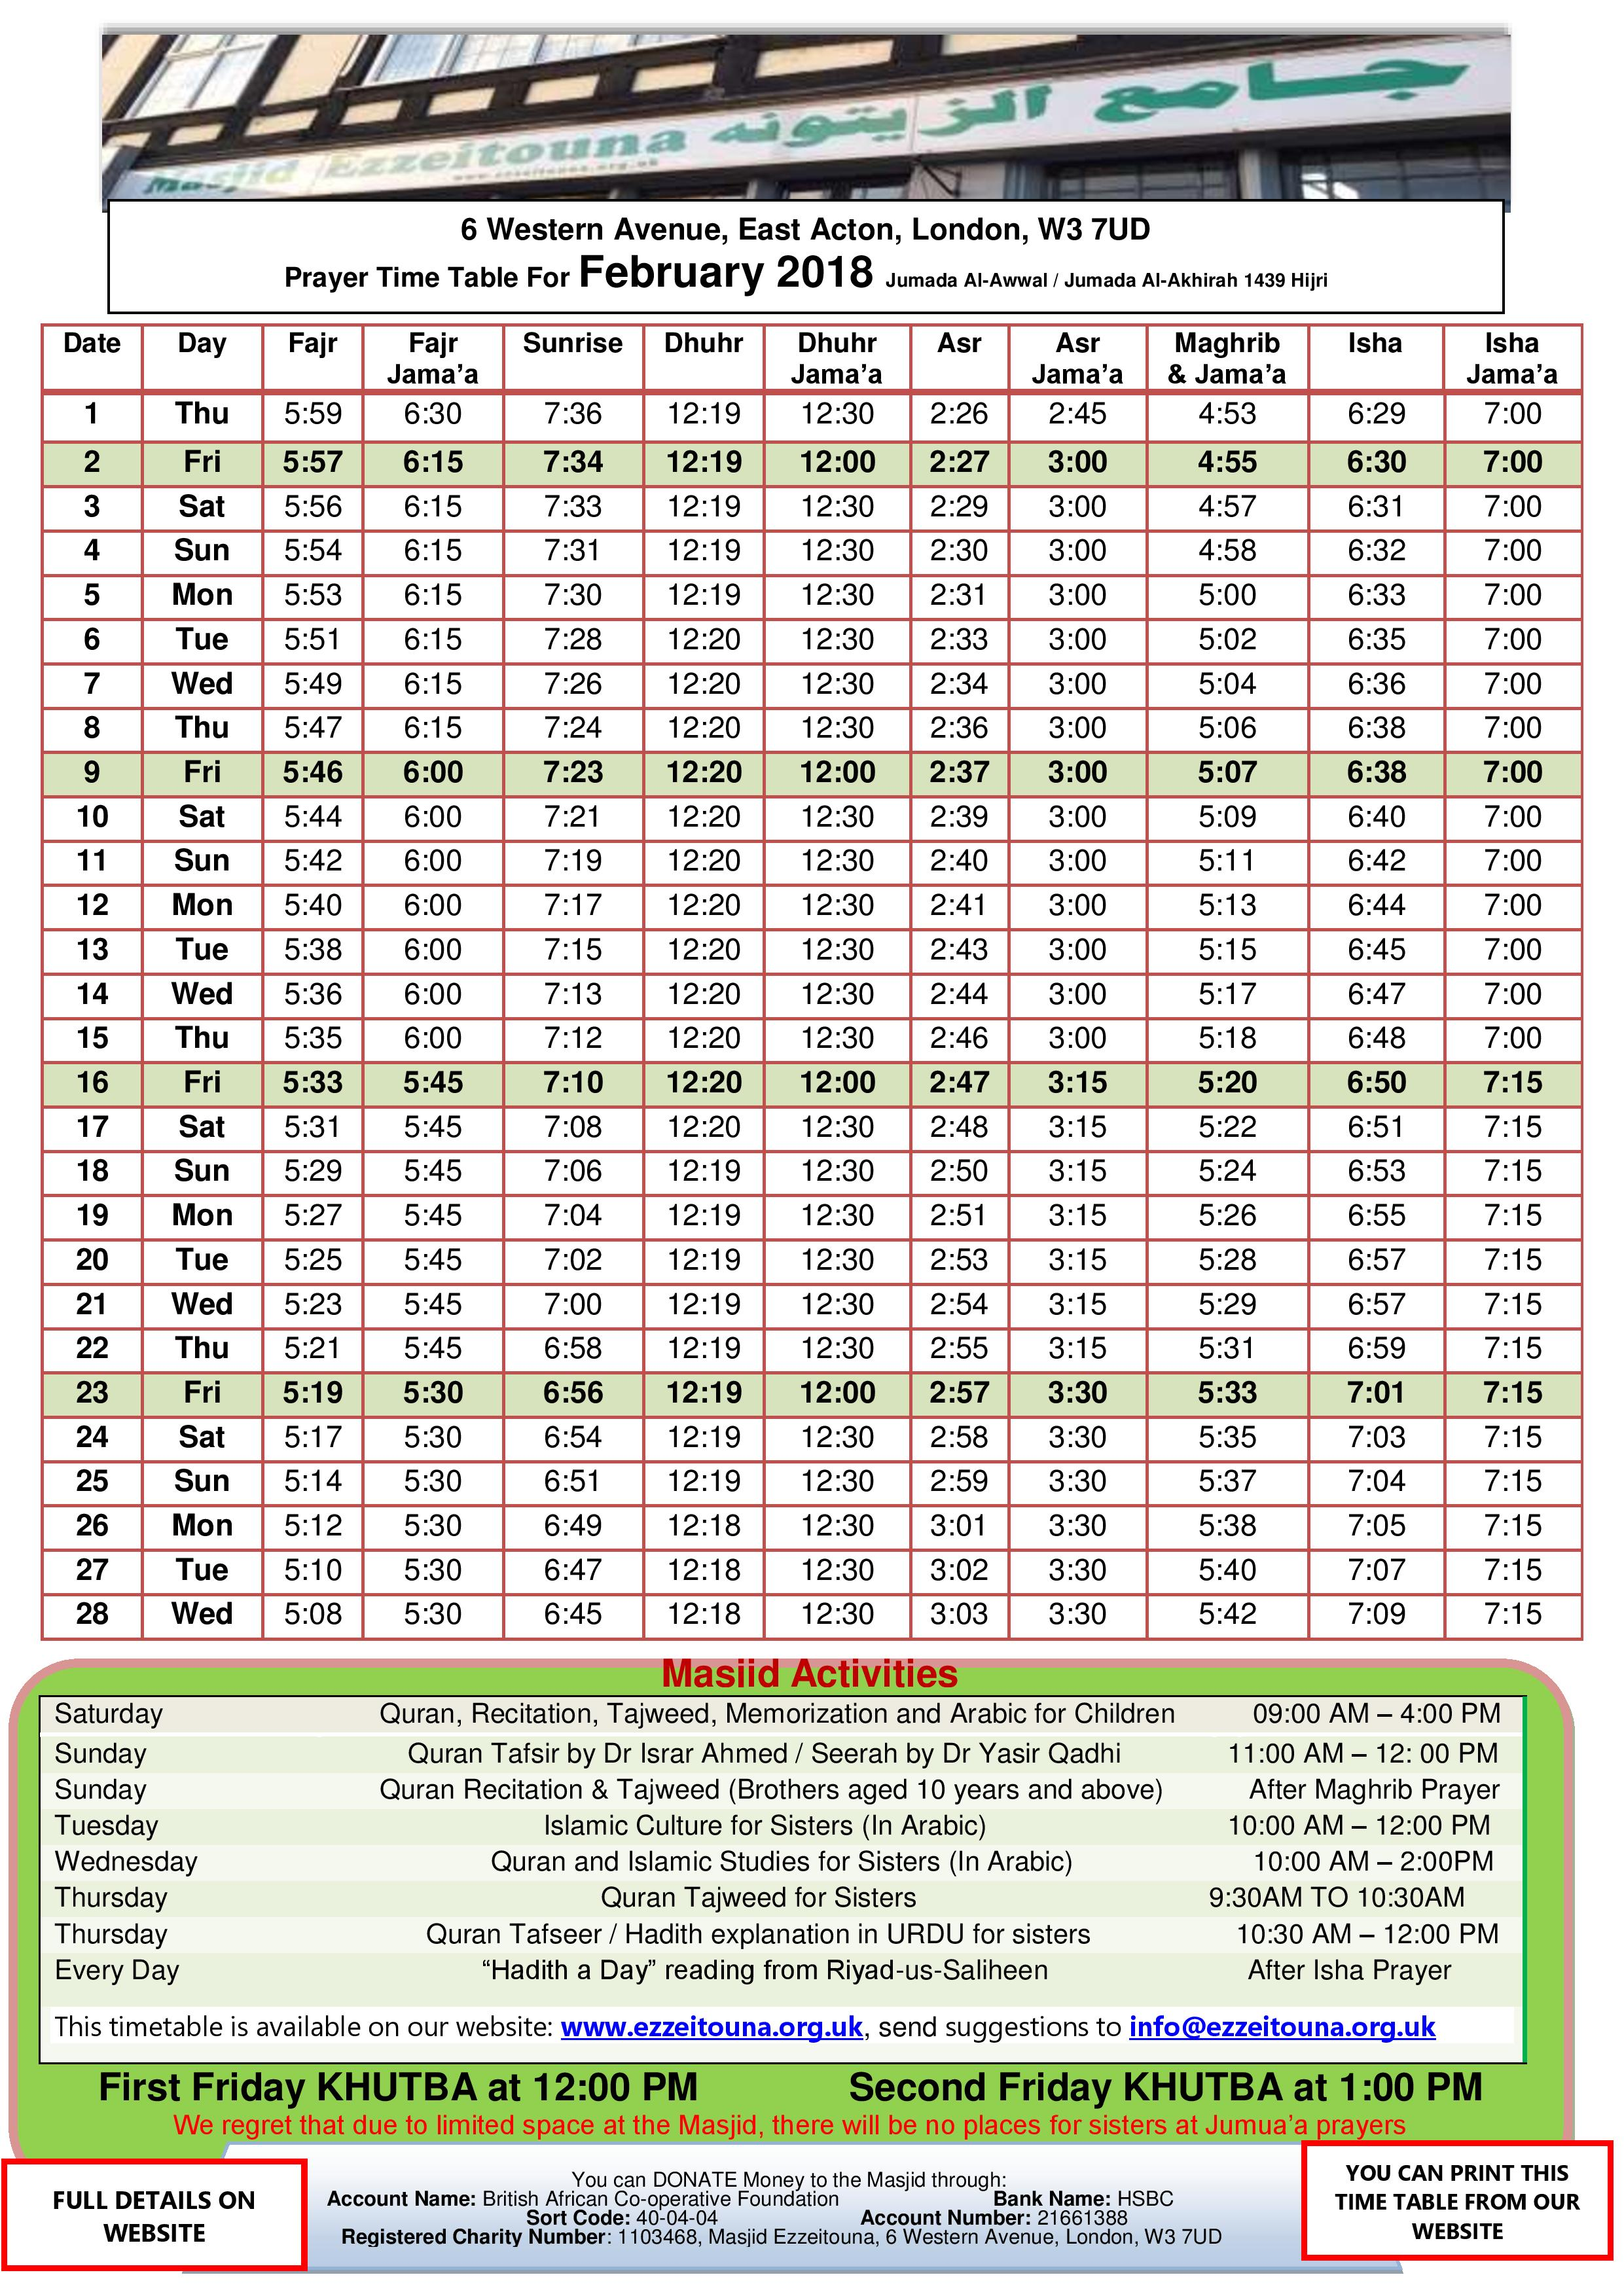 Prayers Timetable for February 2018- Masjid Ezzeitouna